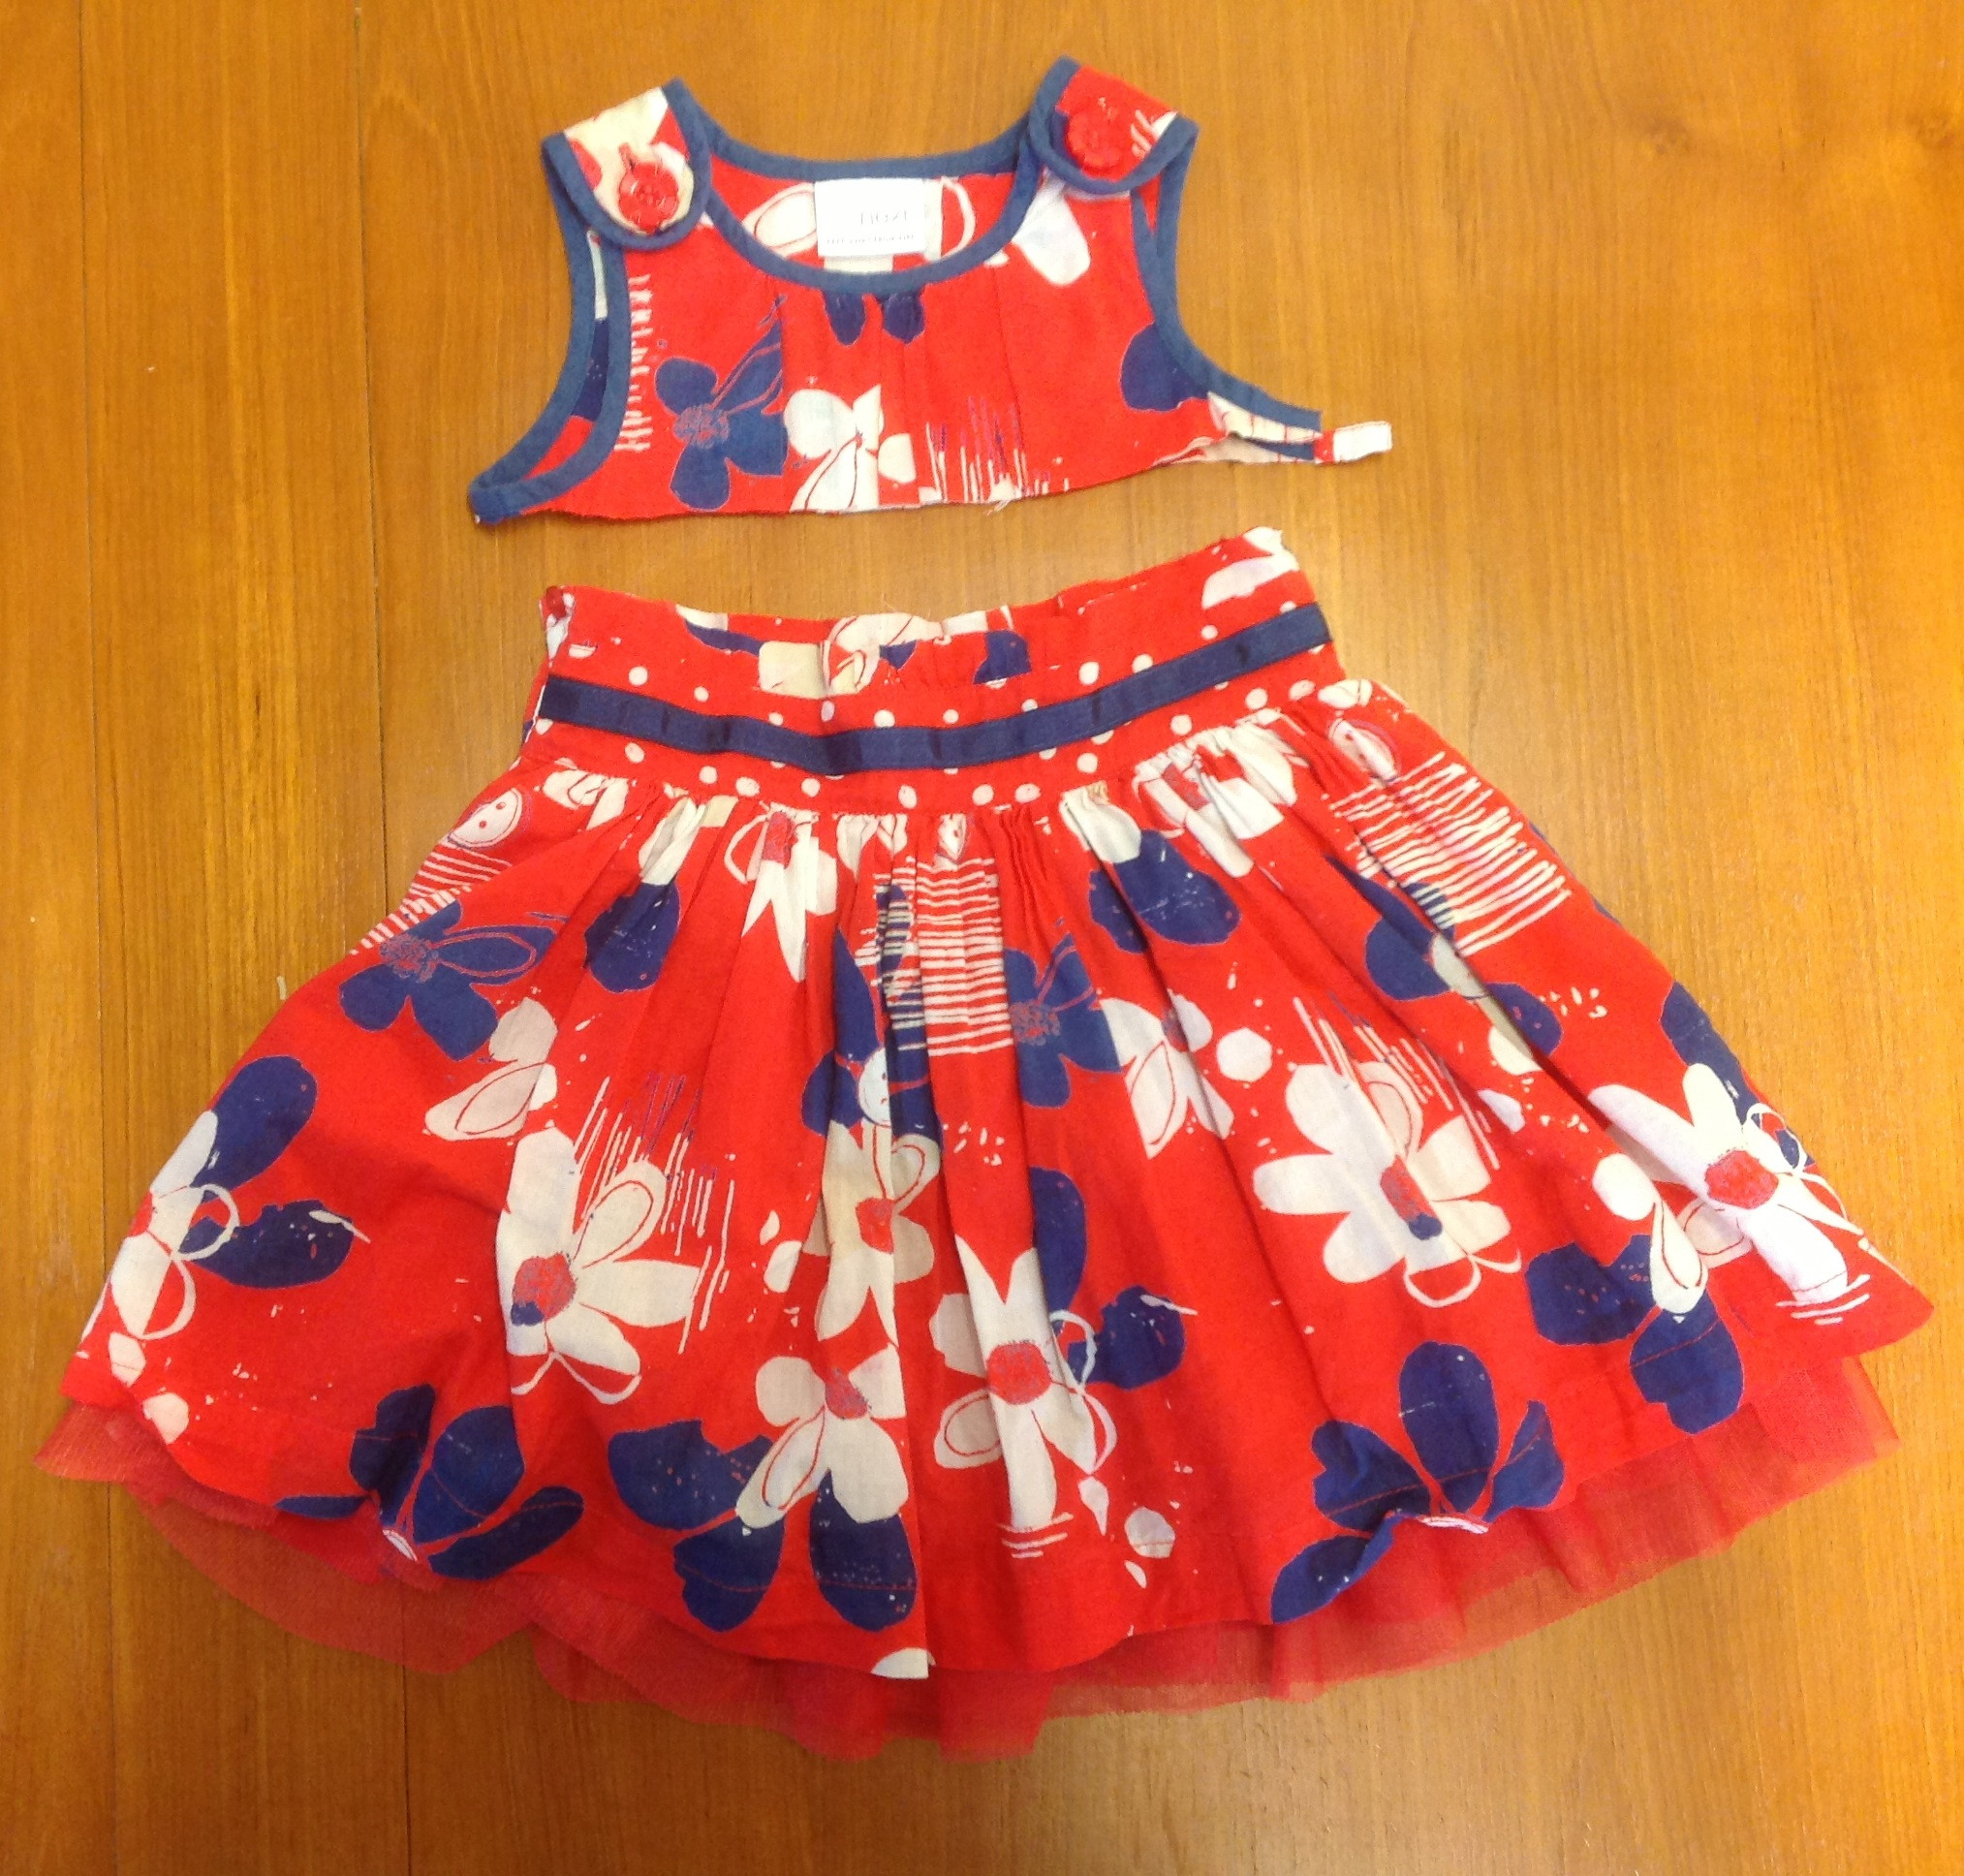 Best ideas about DIY Toddler Dress . Save or Pin Easy DIY Skirt from Toddler Dress – Crafter in the attic Now.